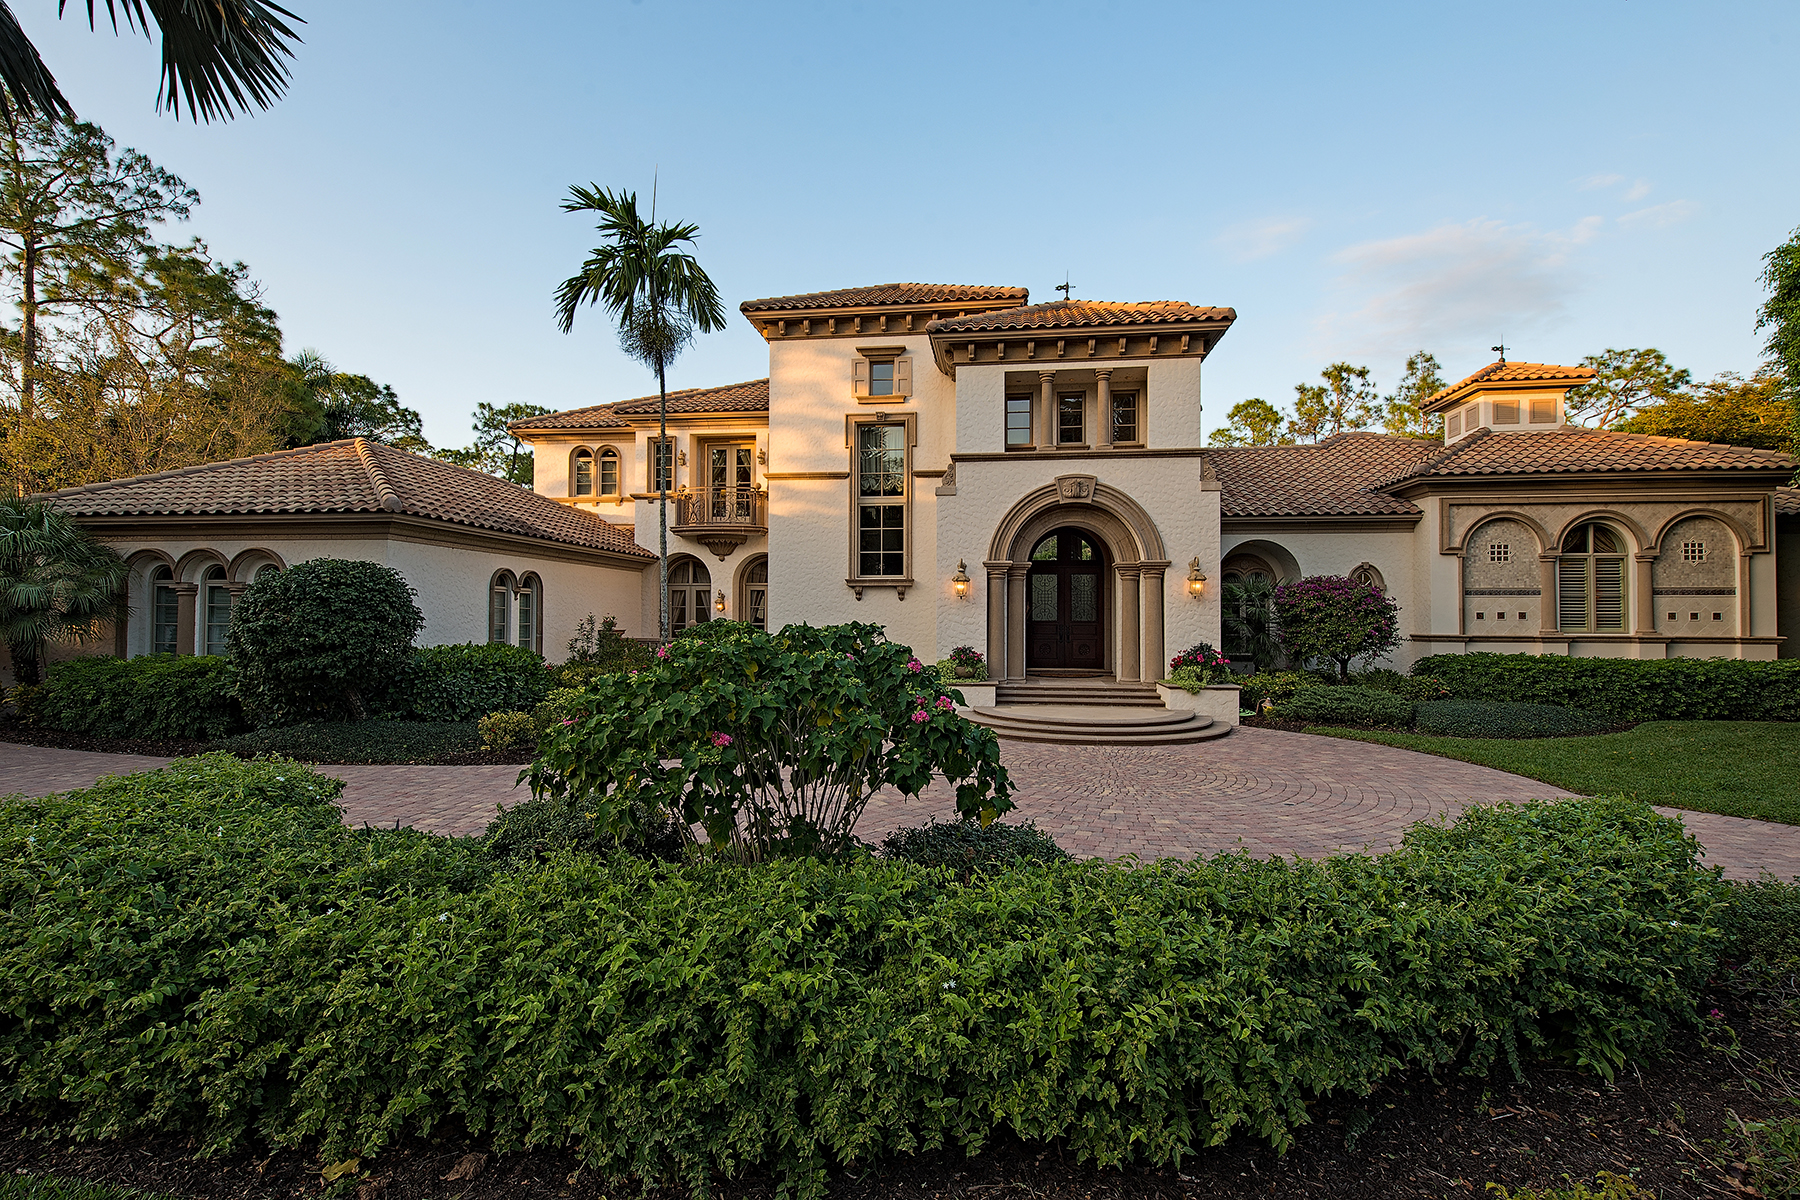 Casa Unifamiliar por un Alquiler en QUAIL WEST - QUAIL WEST 6529 Highcroft Dr Naples, Florida 34119 Estados Unidos